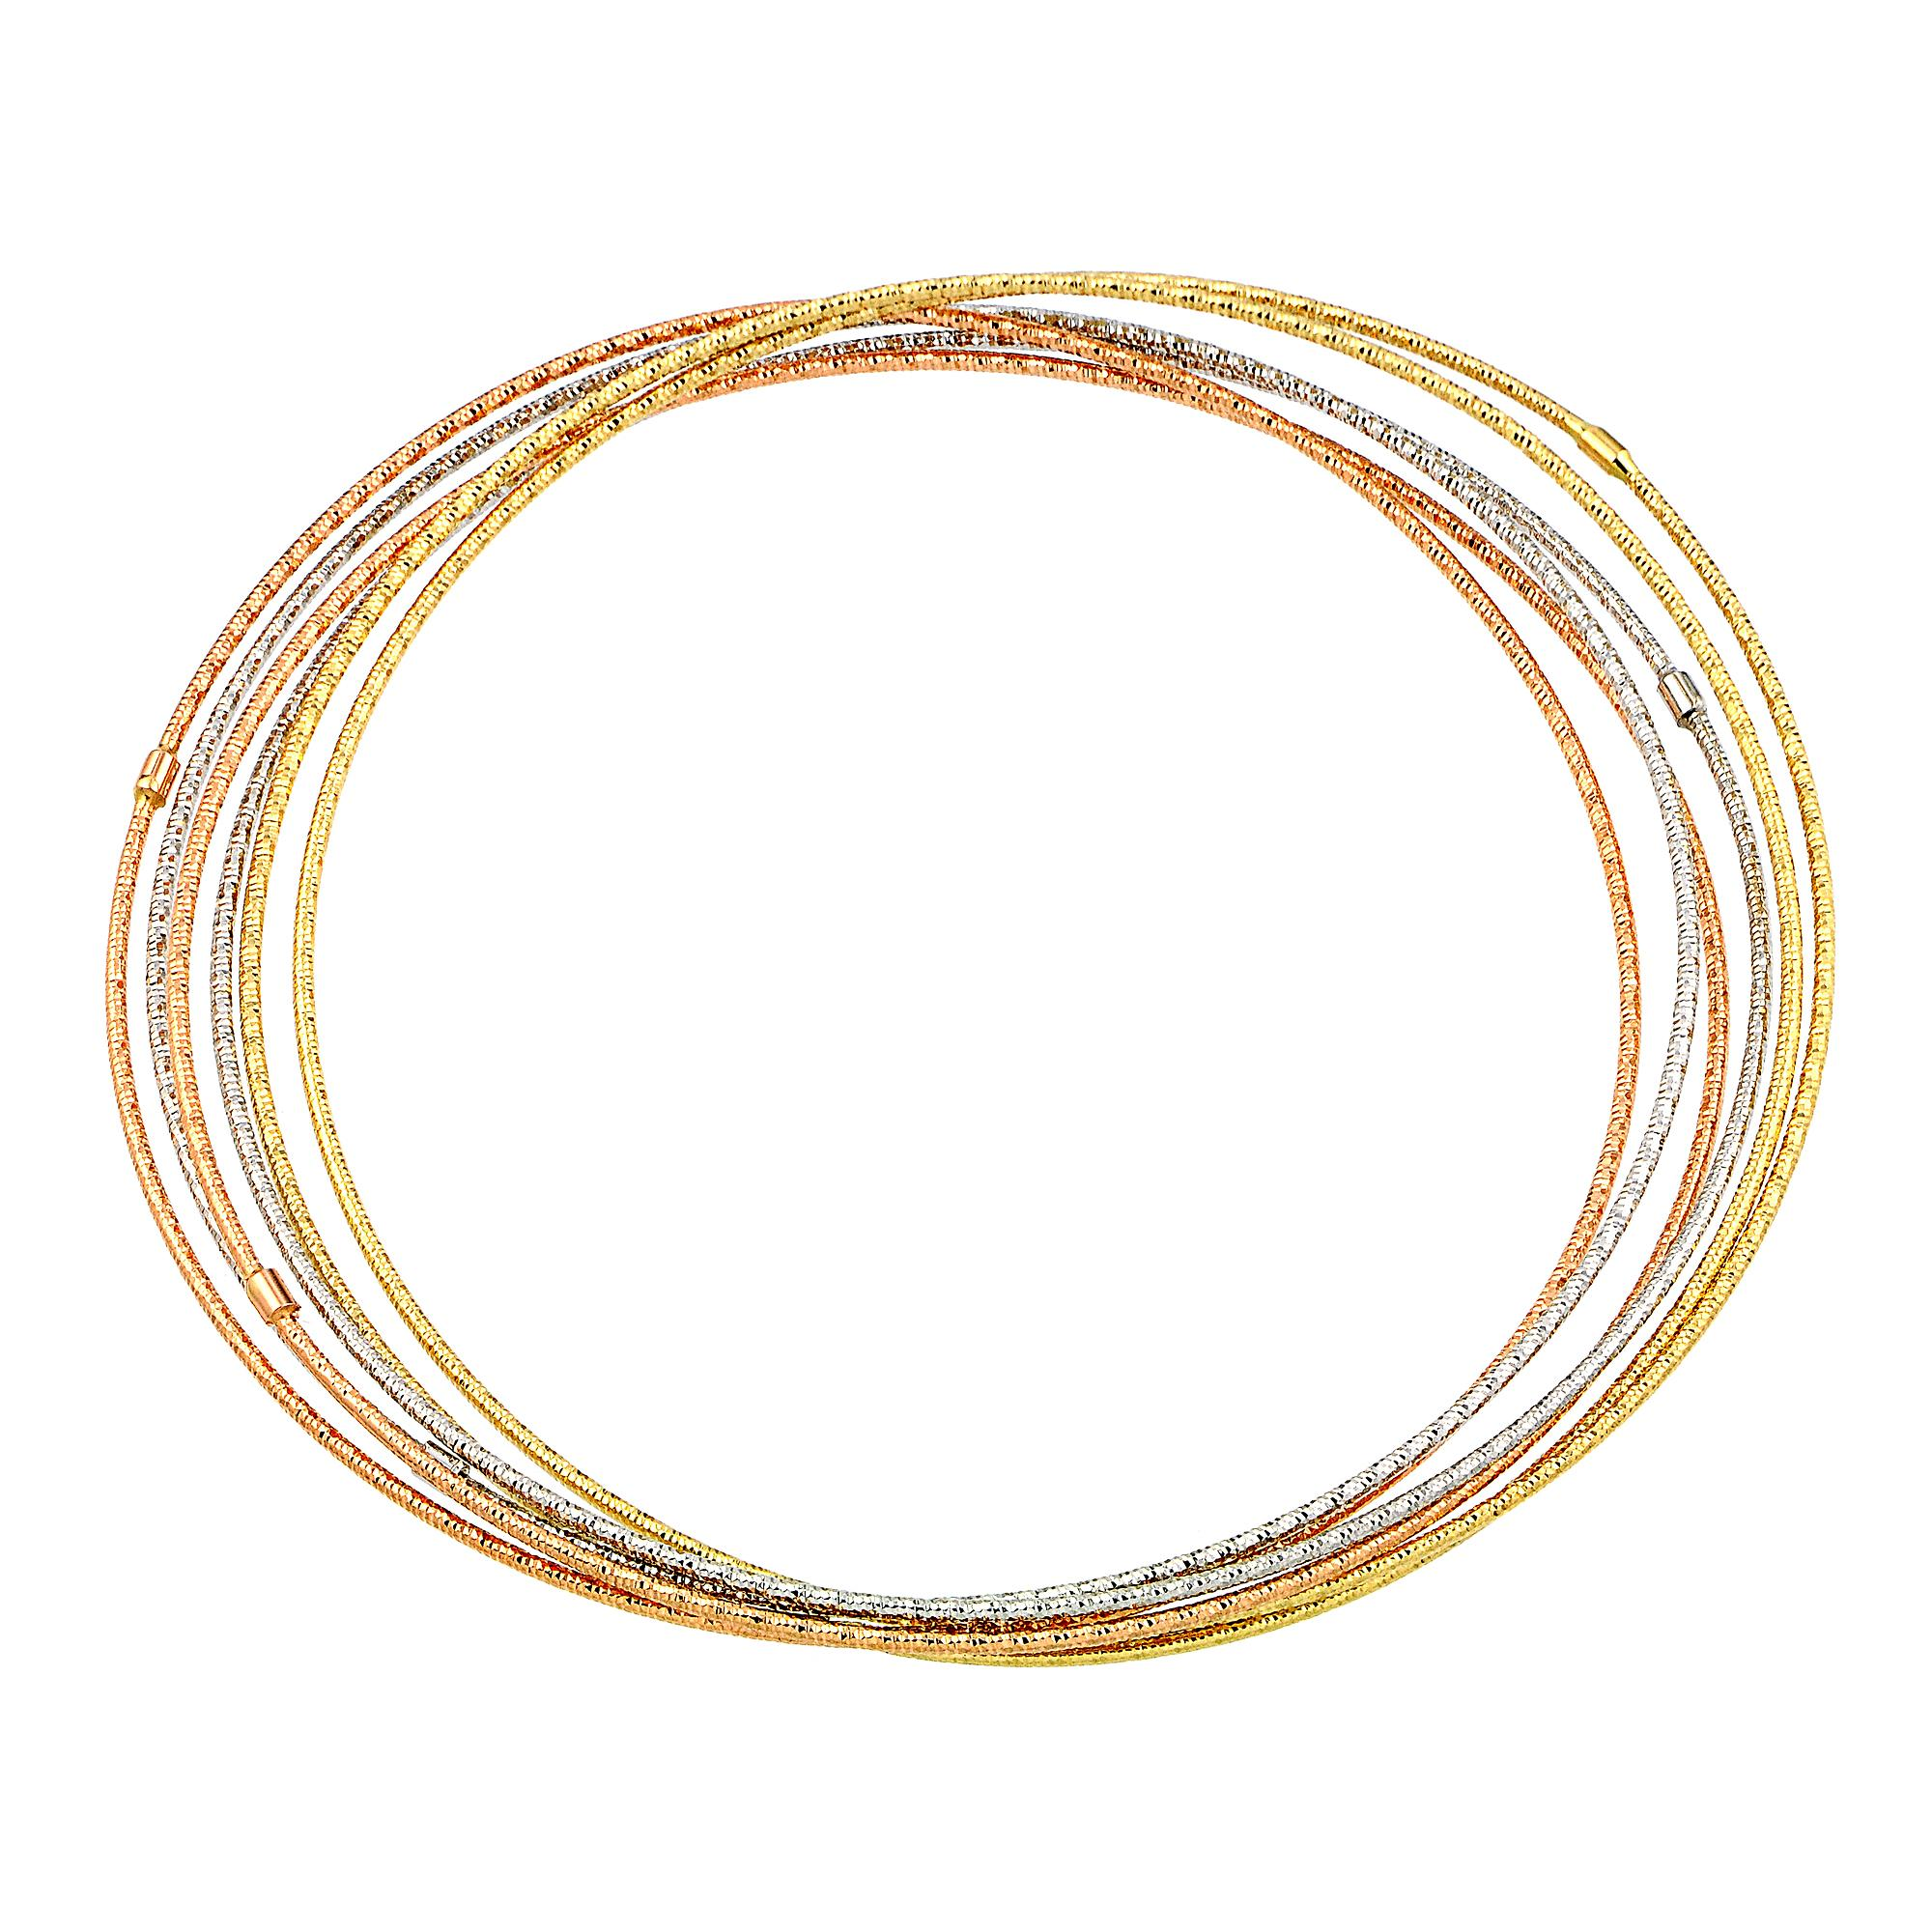 jewellery bangles manik gold chand kolkata shop jeweller